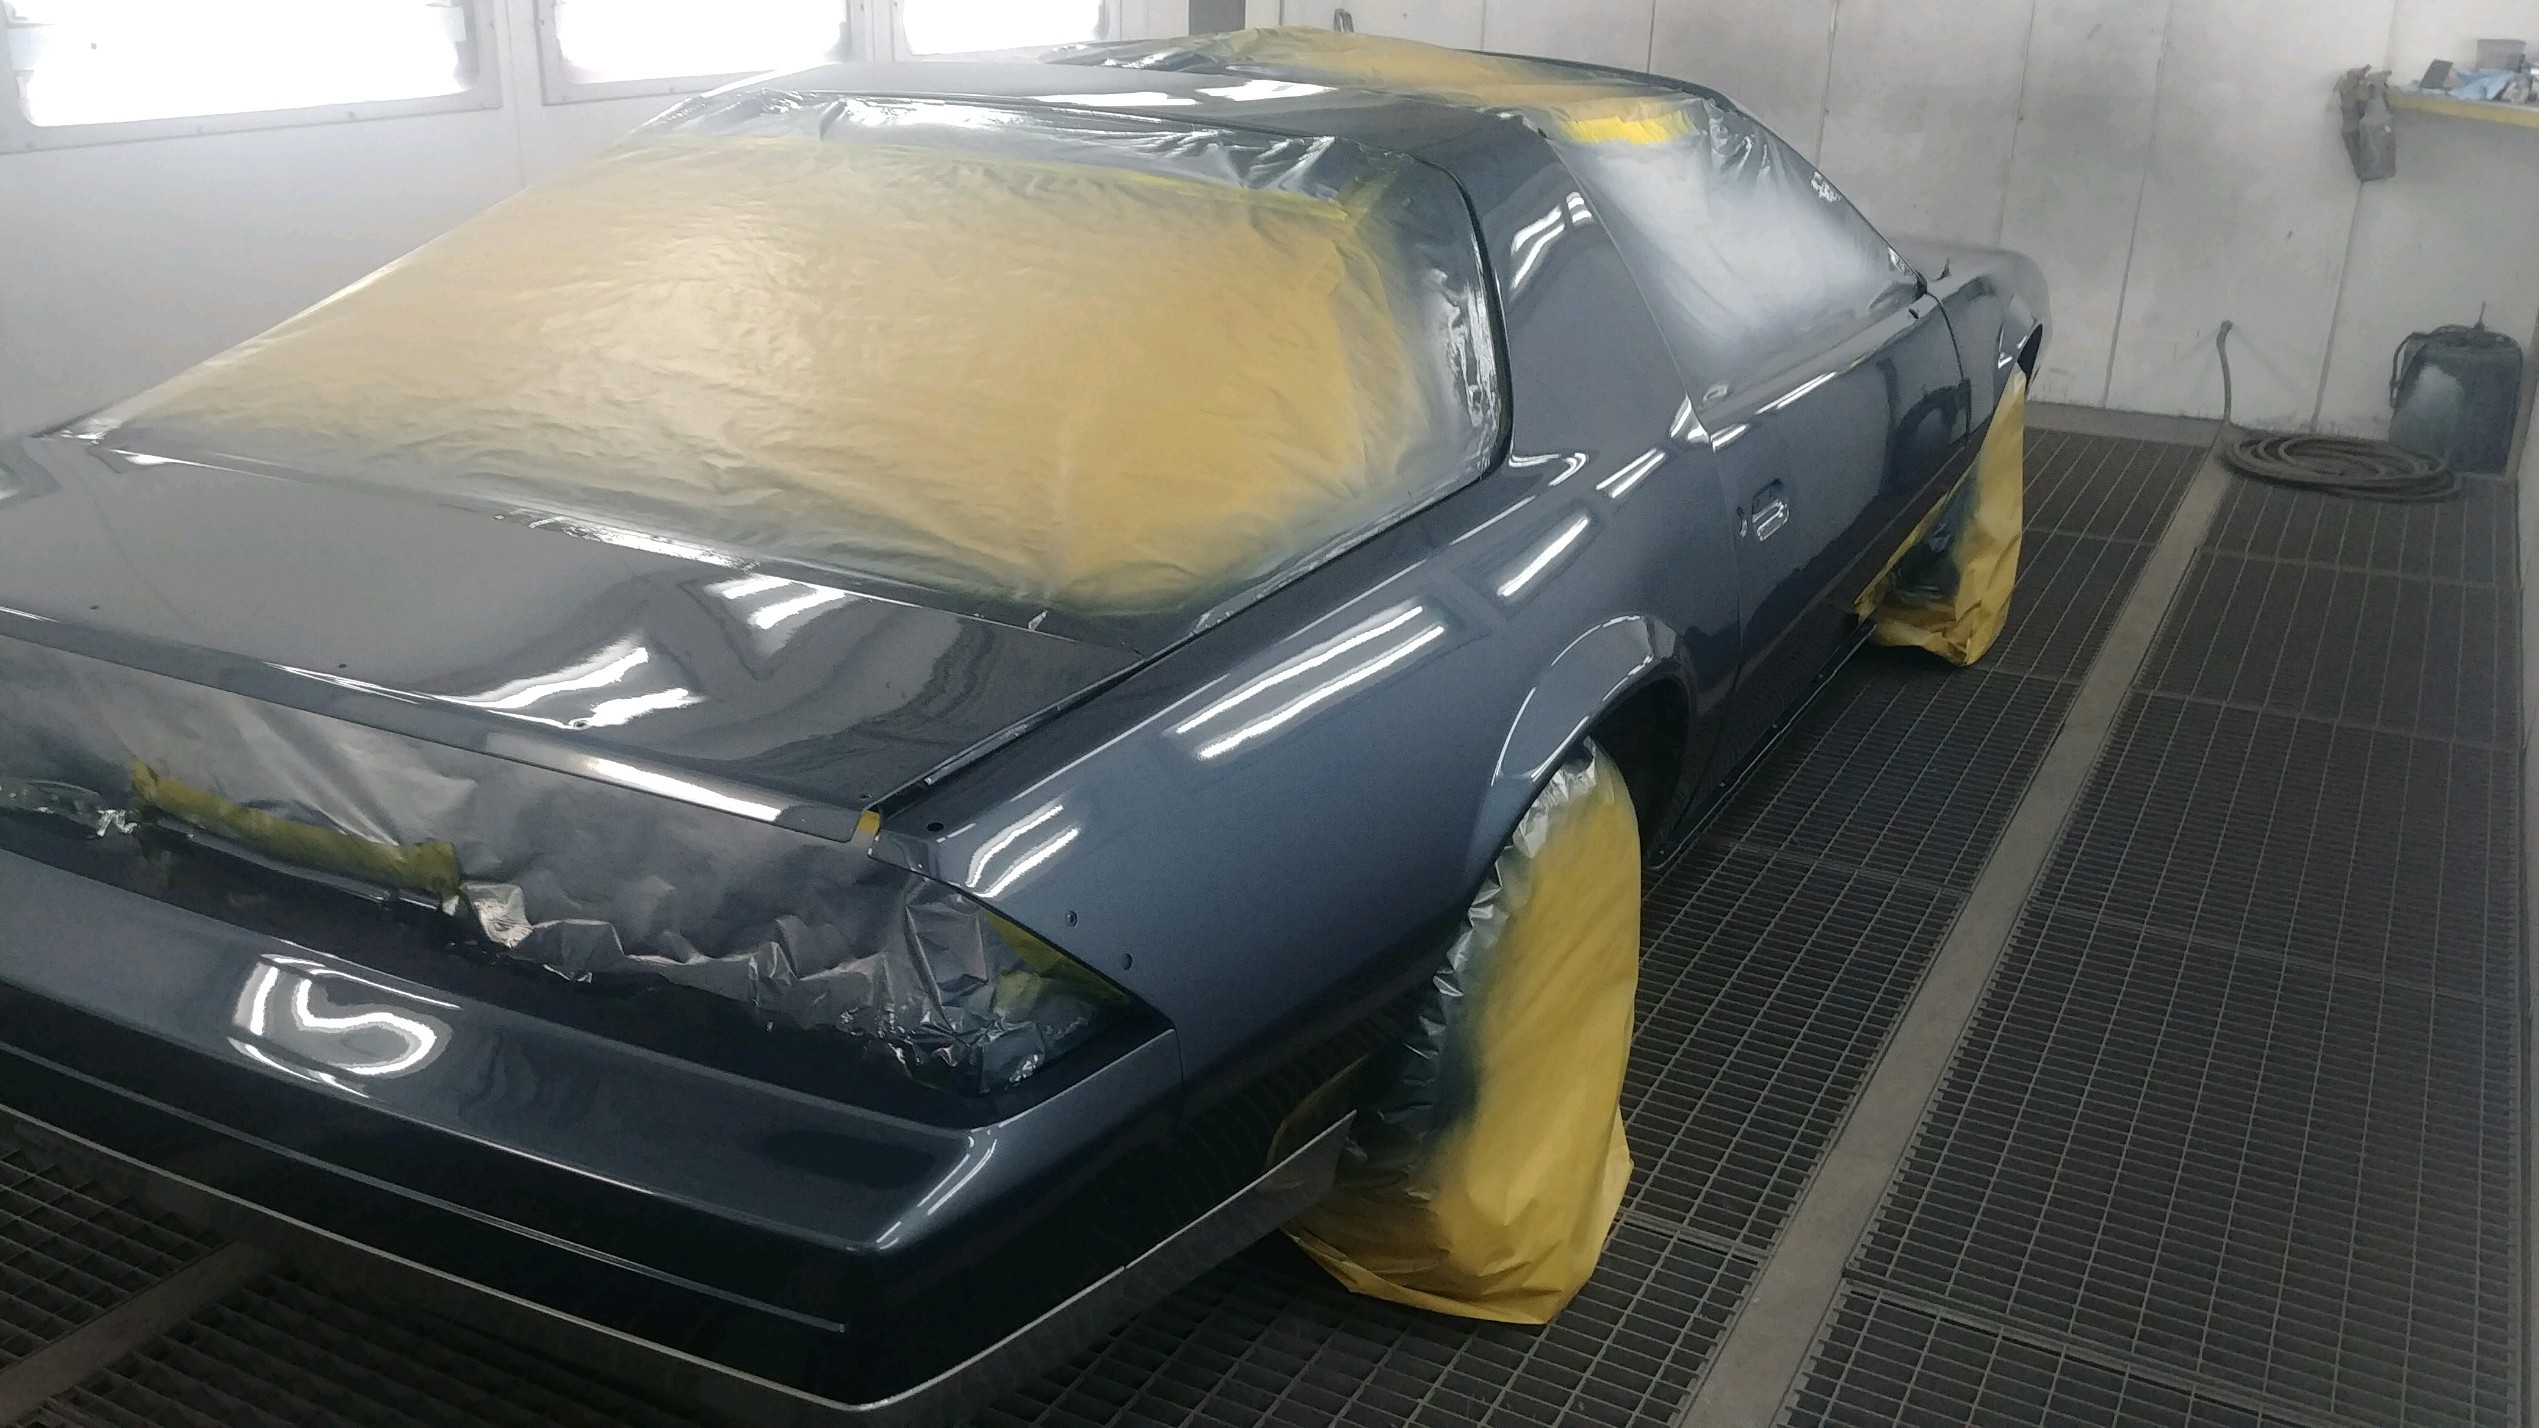 All over paint job - during